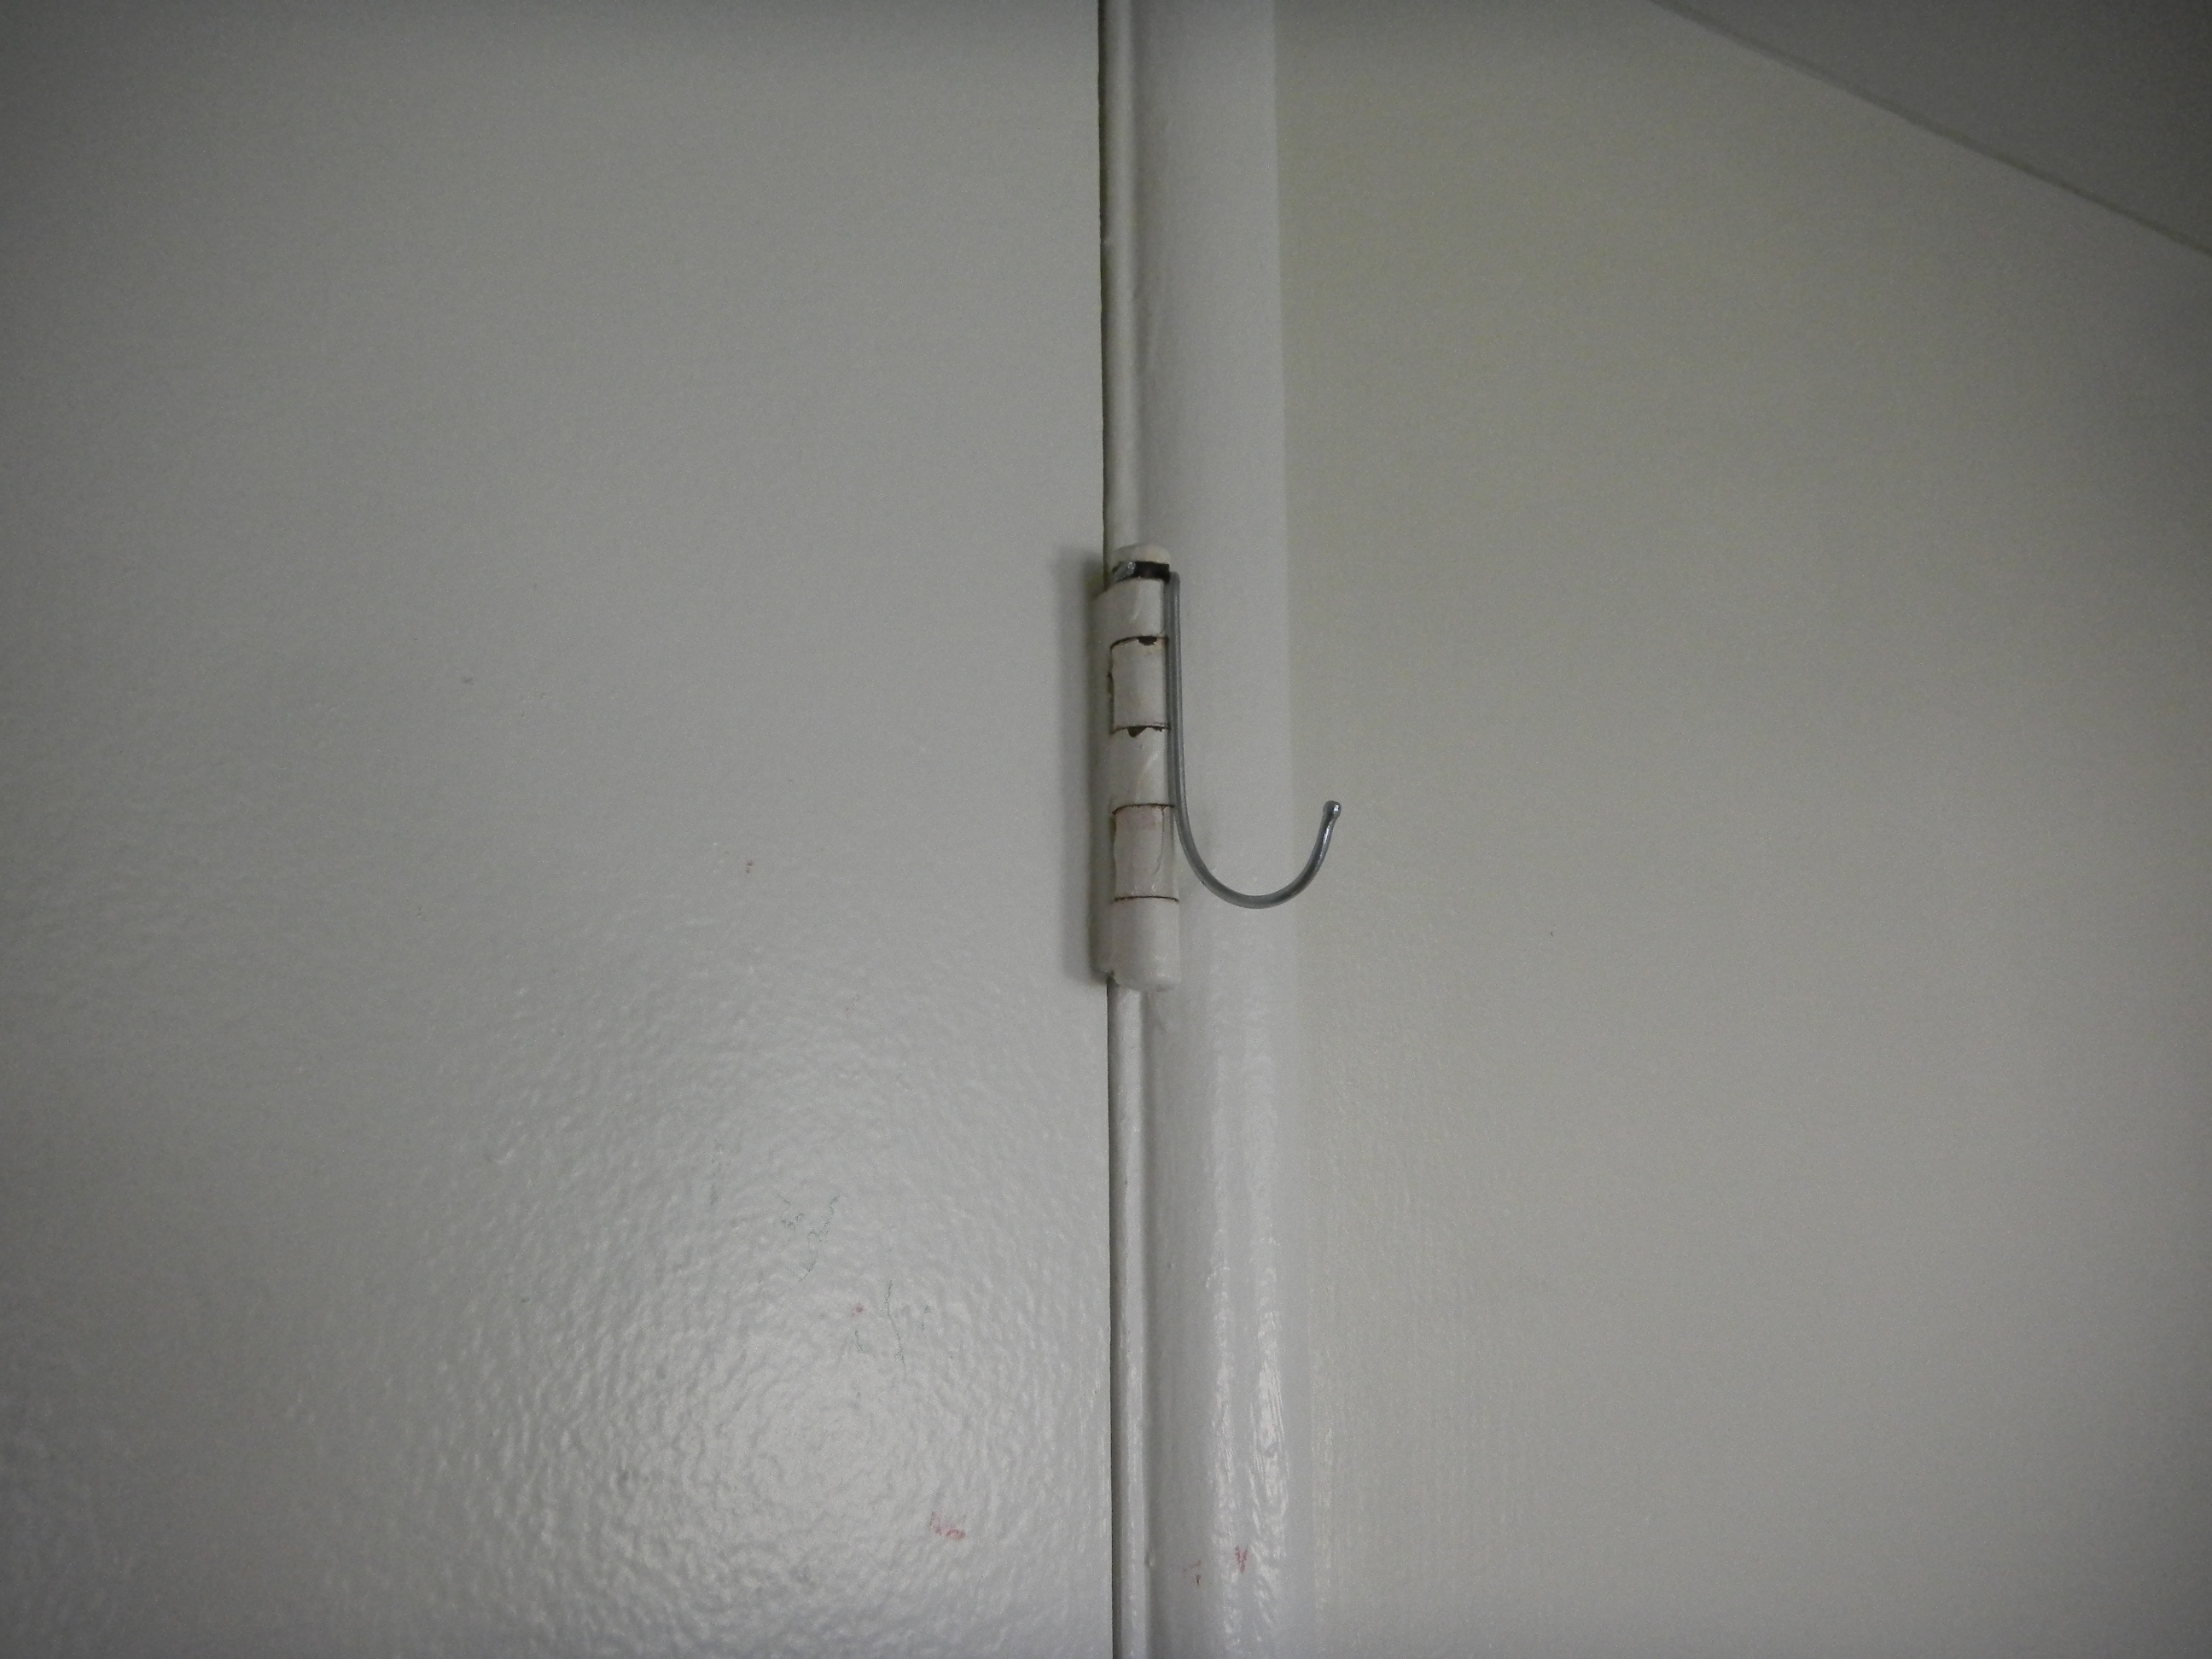 Picture of Door Hinge Hook - $0 Project #2